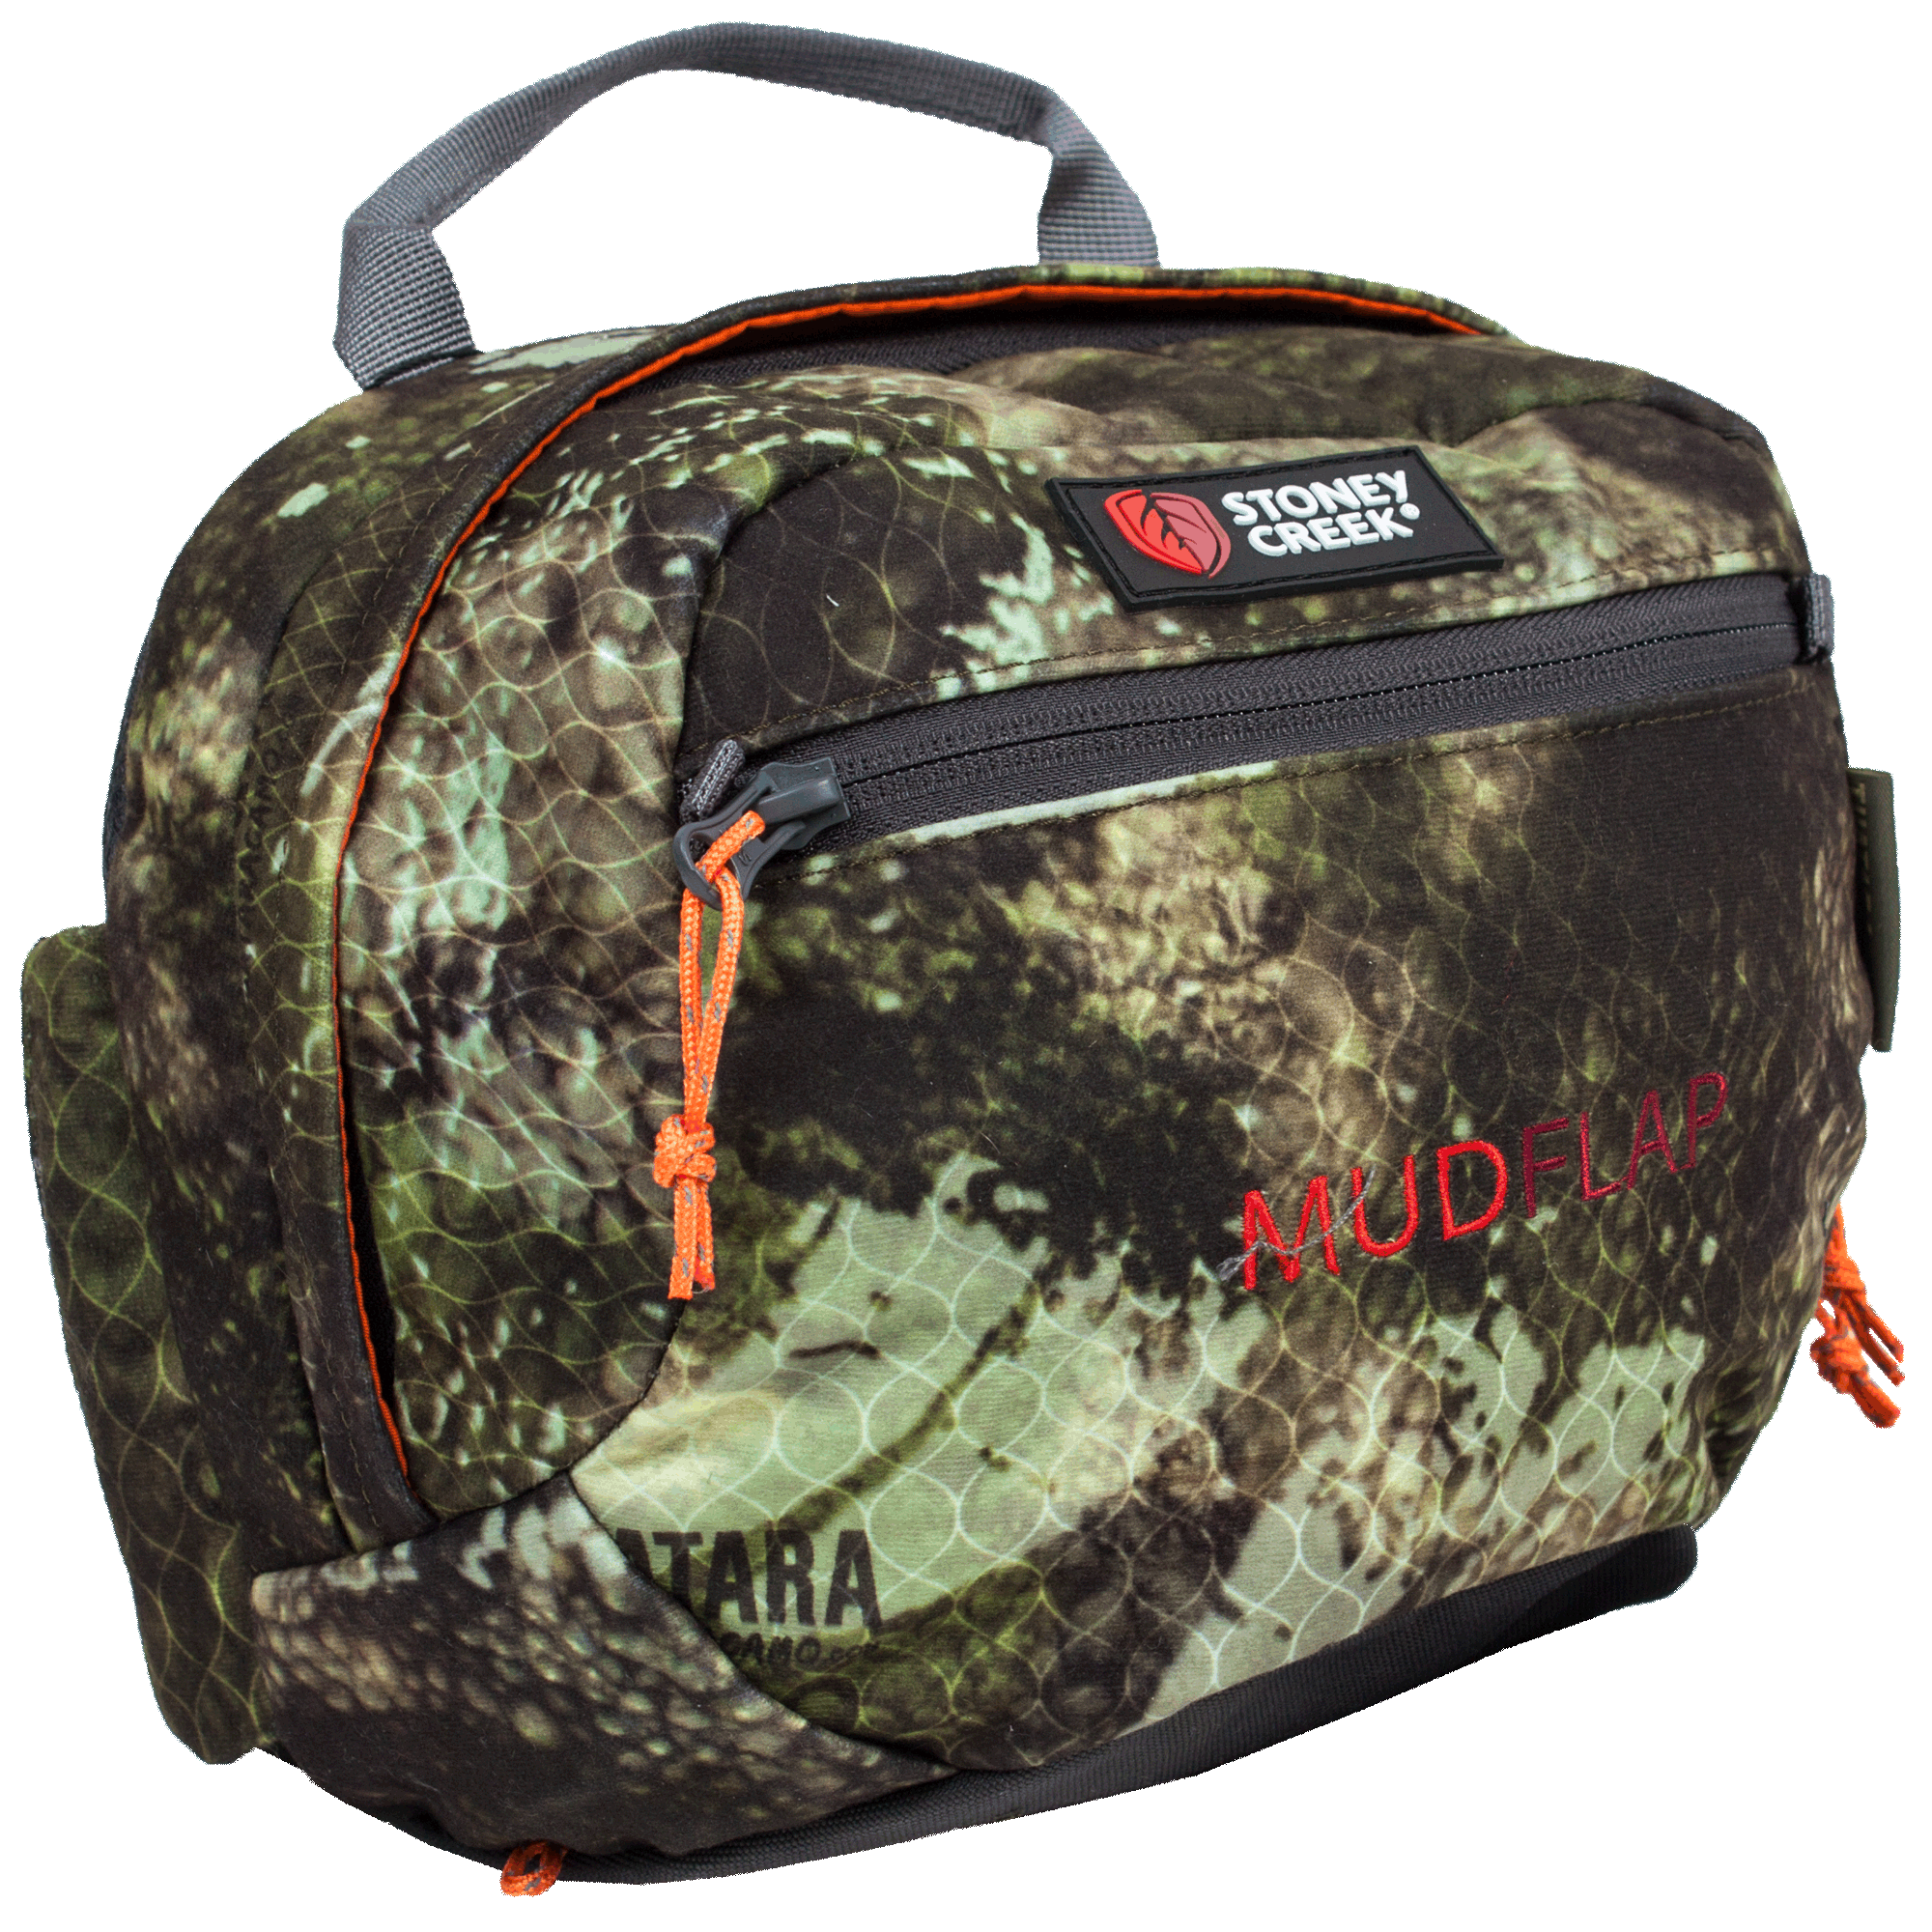 Mud Flap Bumbag 6L